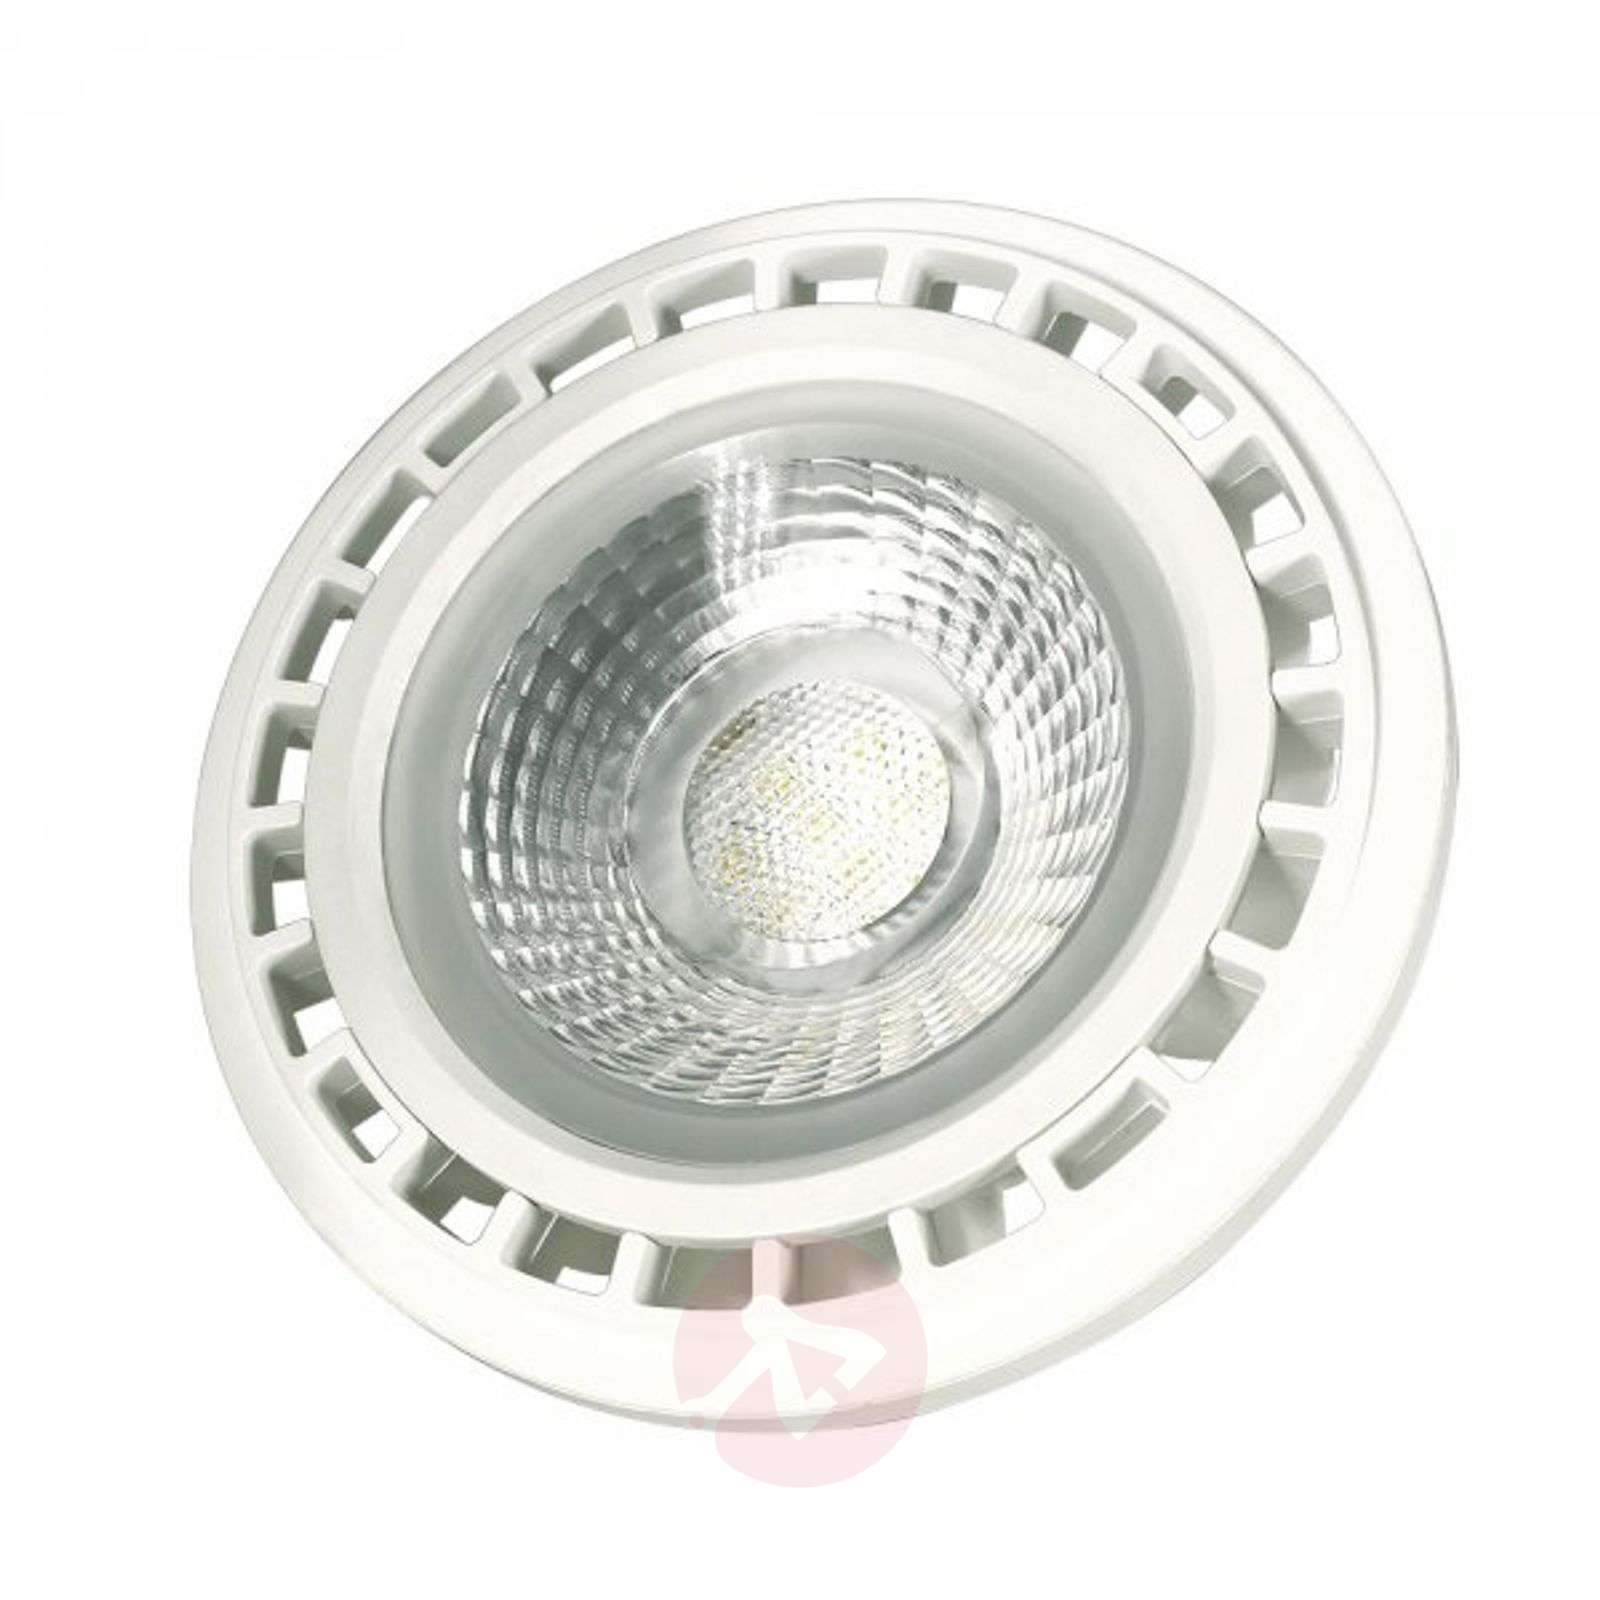 G53 AR111 17 W 840 NV LED-heijastin-2515058-01